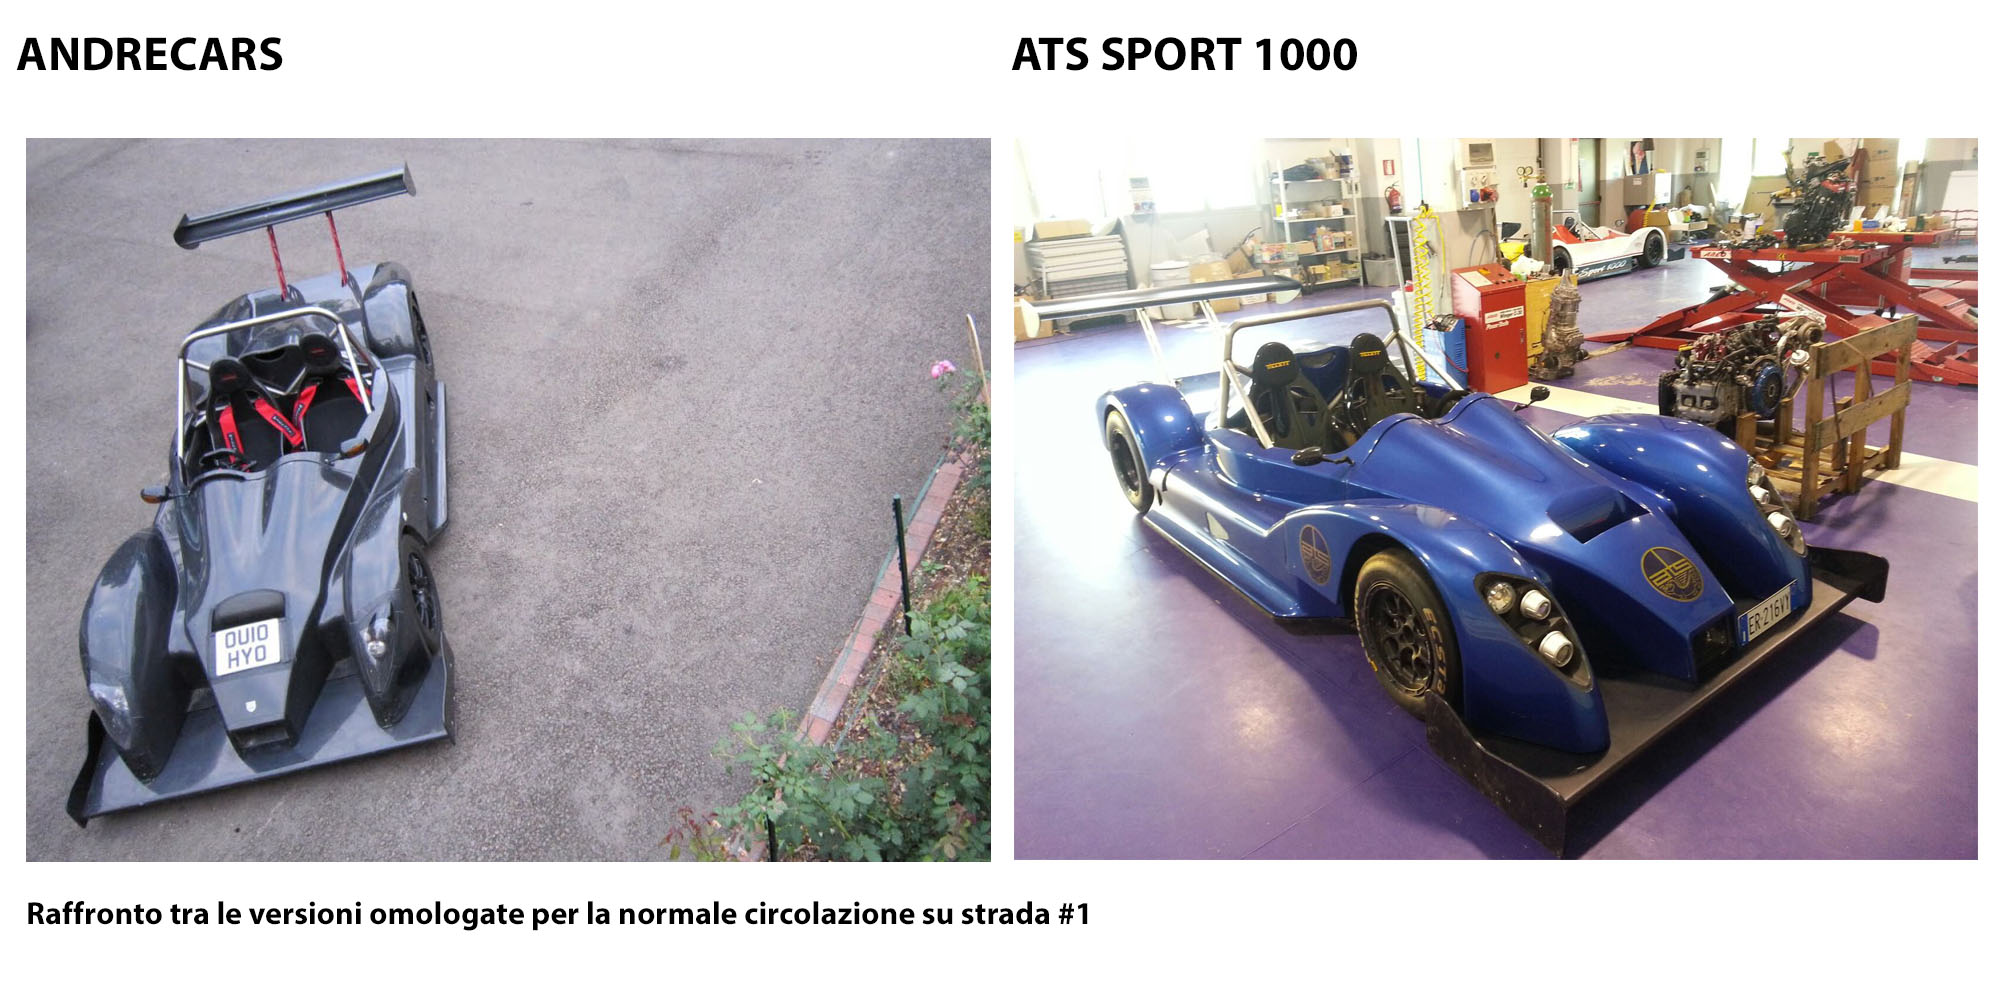 raffronto andrecars ats sport 1000 targate fronte track fever. Black Bedroom Furniture Sets. Home Design Ideas